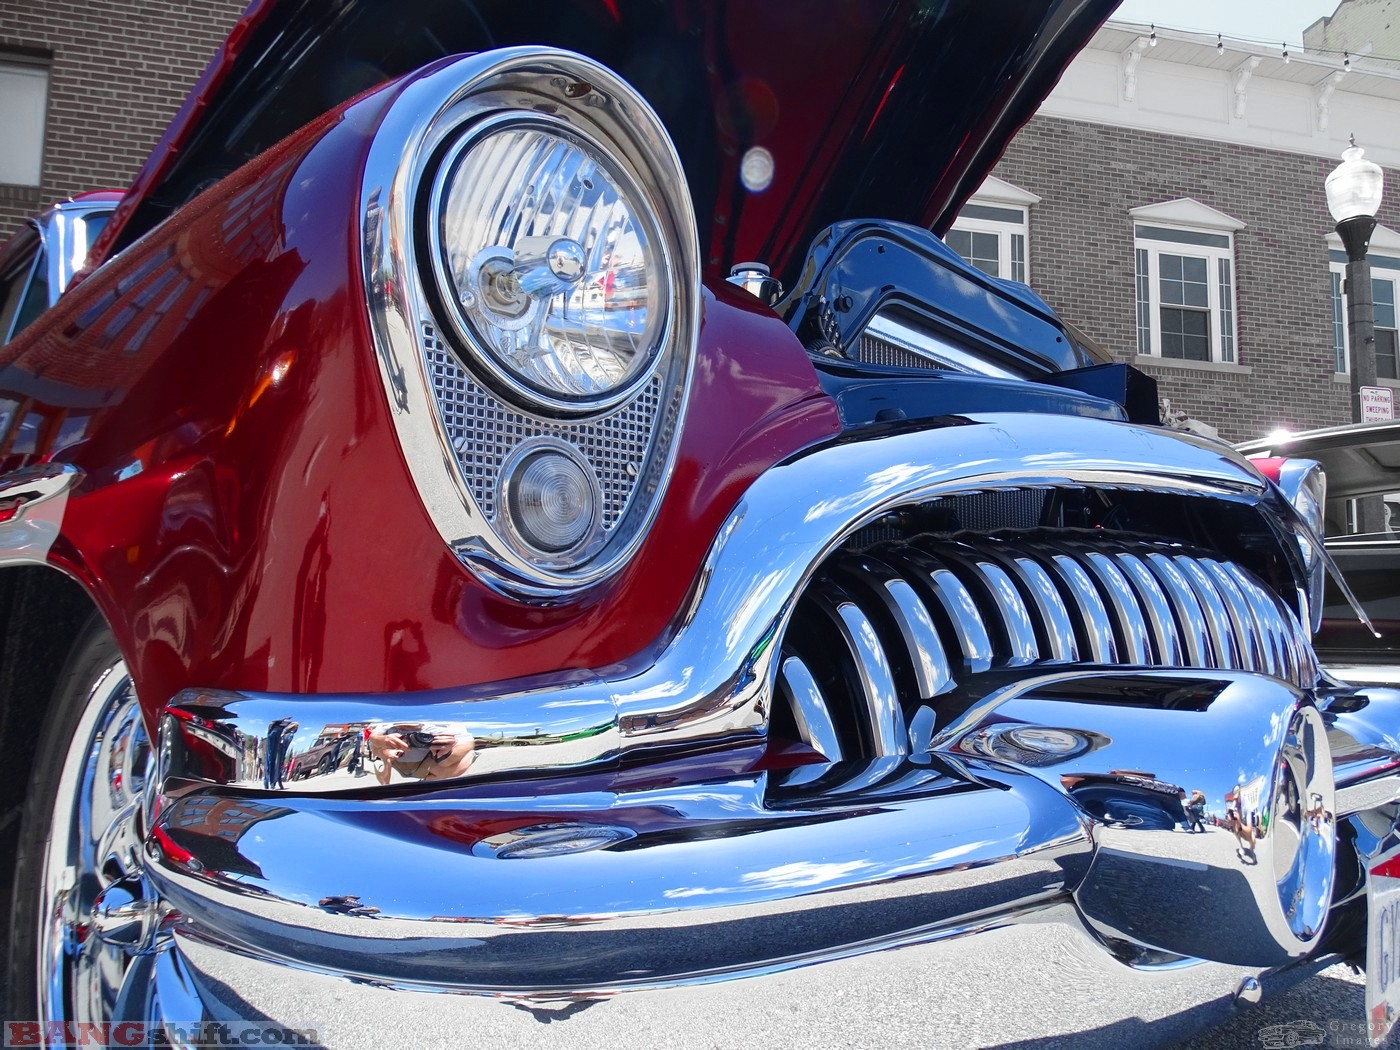 2019 ALS Cruisin' For A Cure Car Show Gallery: More Awesome Iron From This Fantastic Show